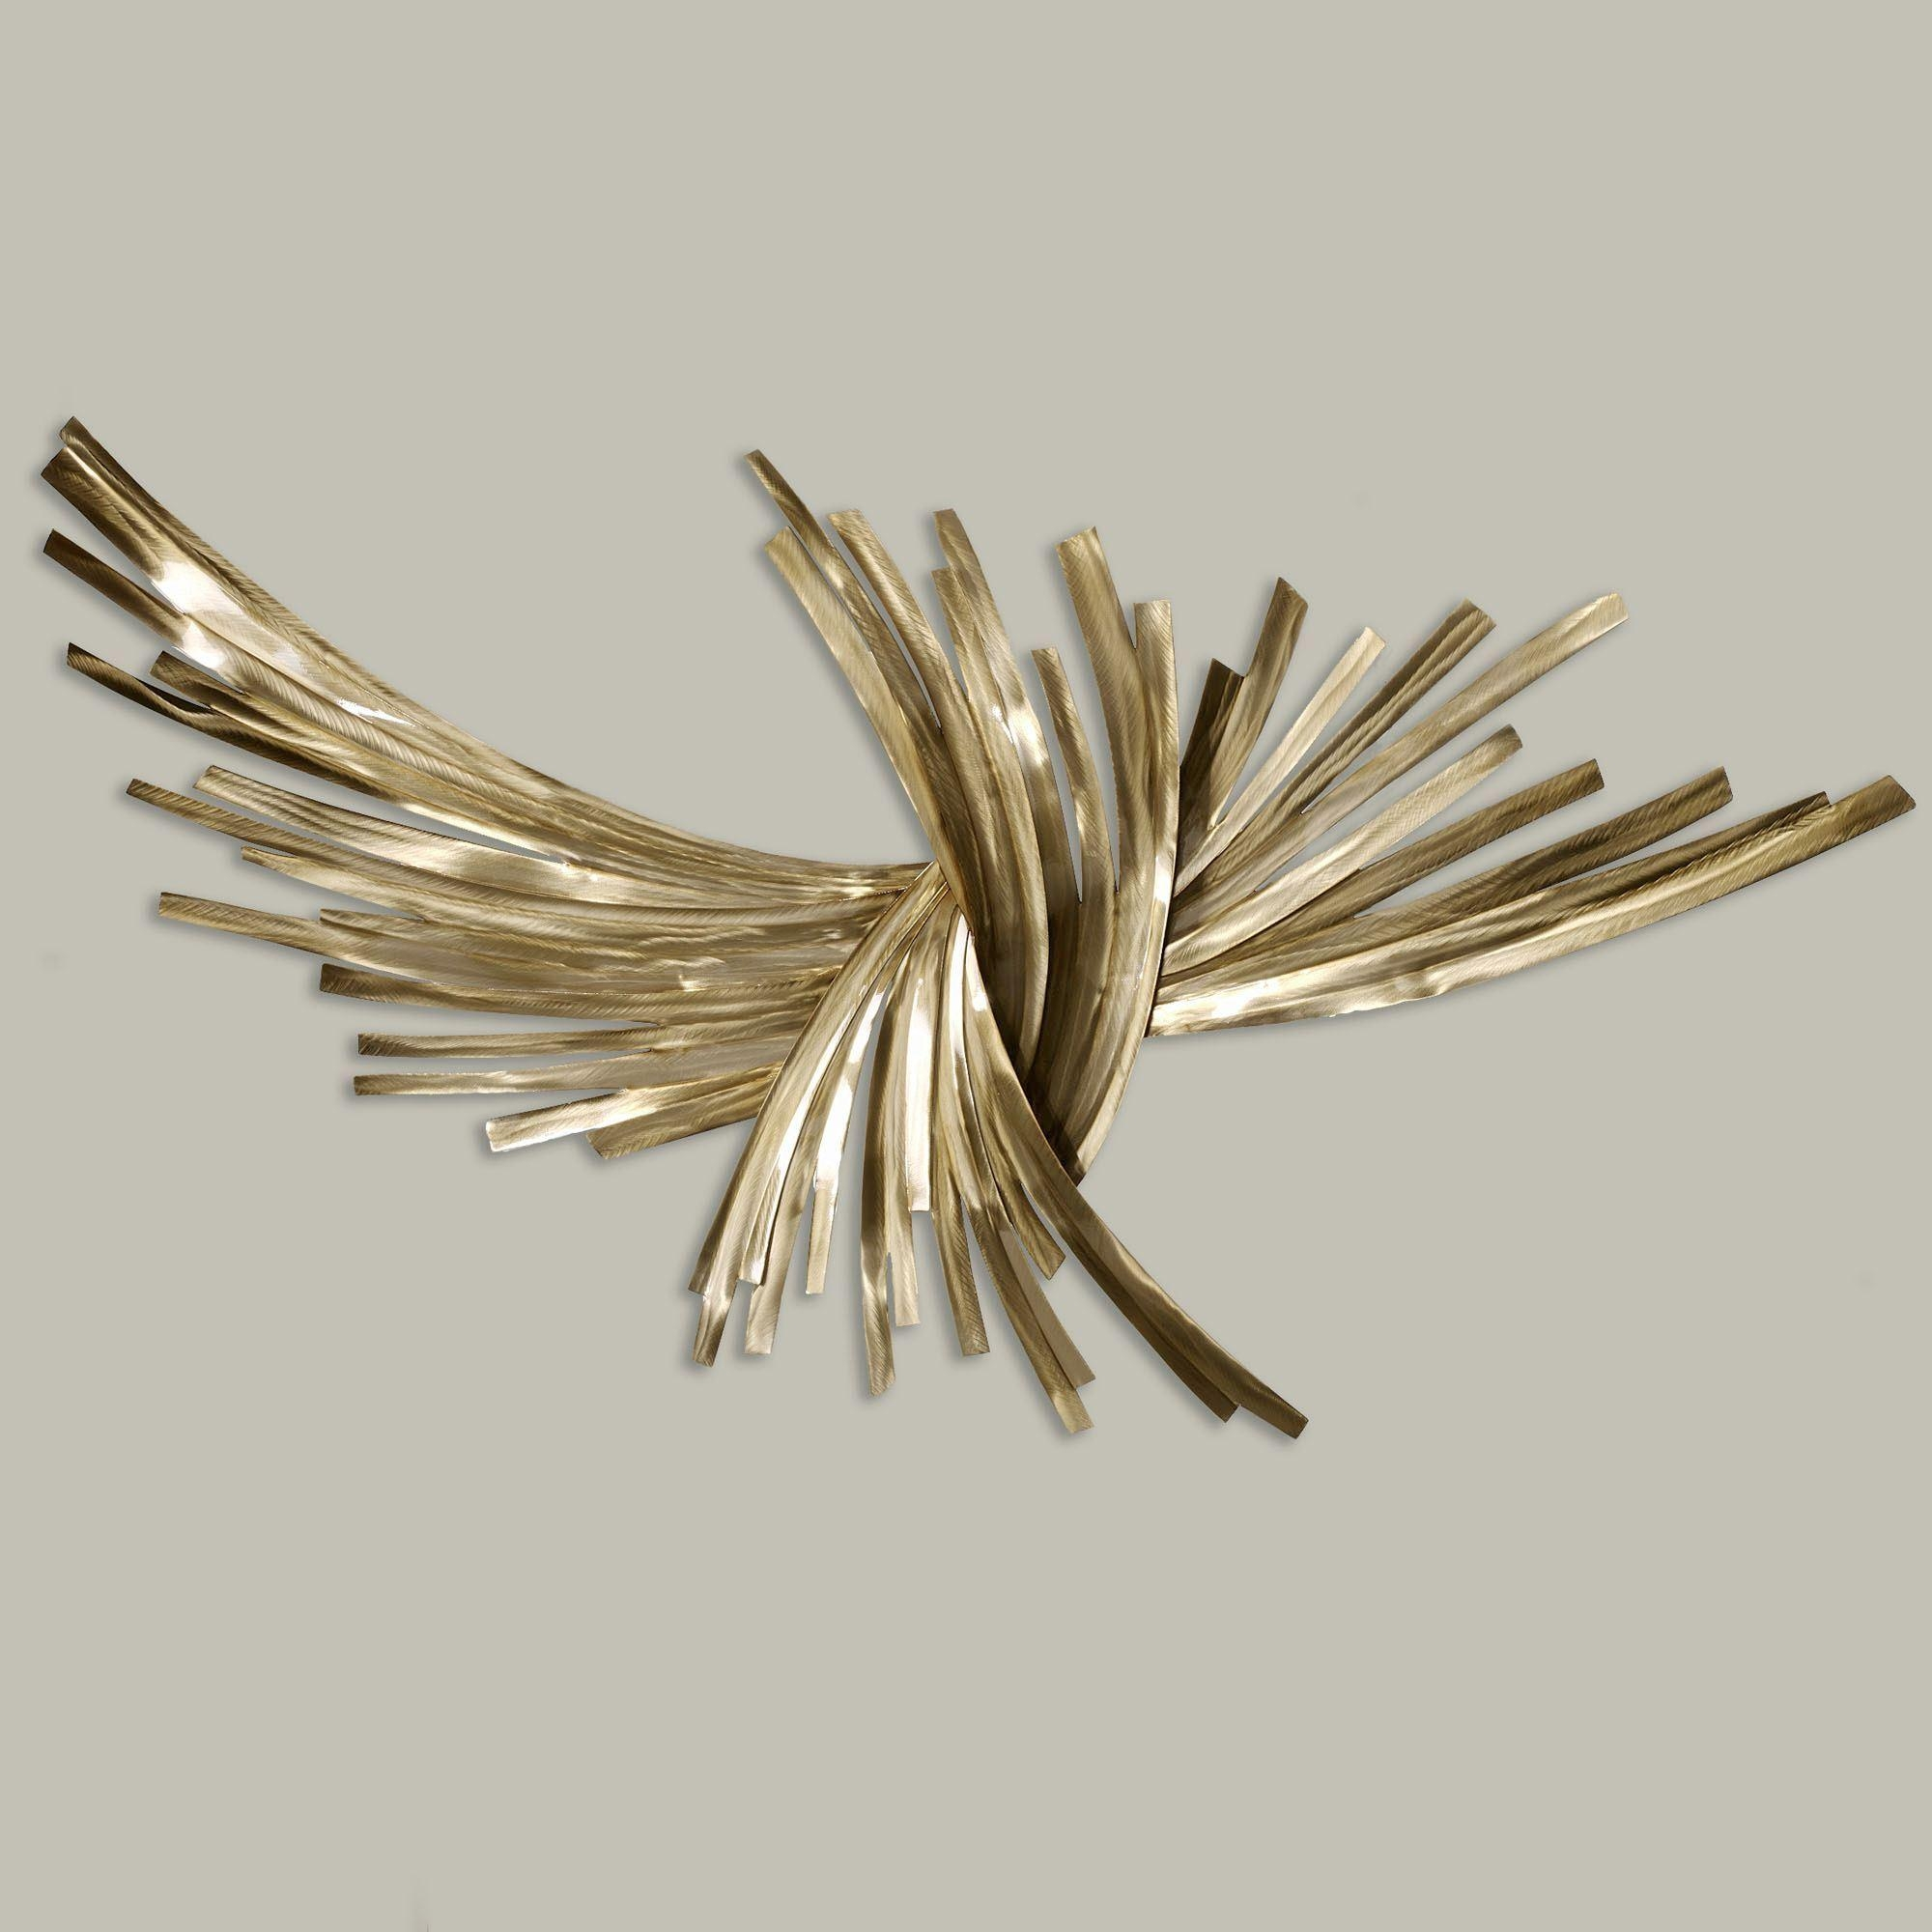 Contemporary Metal Wall Art Sculptures | Touch Of Class Regarding Contemporary Metal Wall Art Sculpture (View 10 of 20)